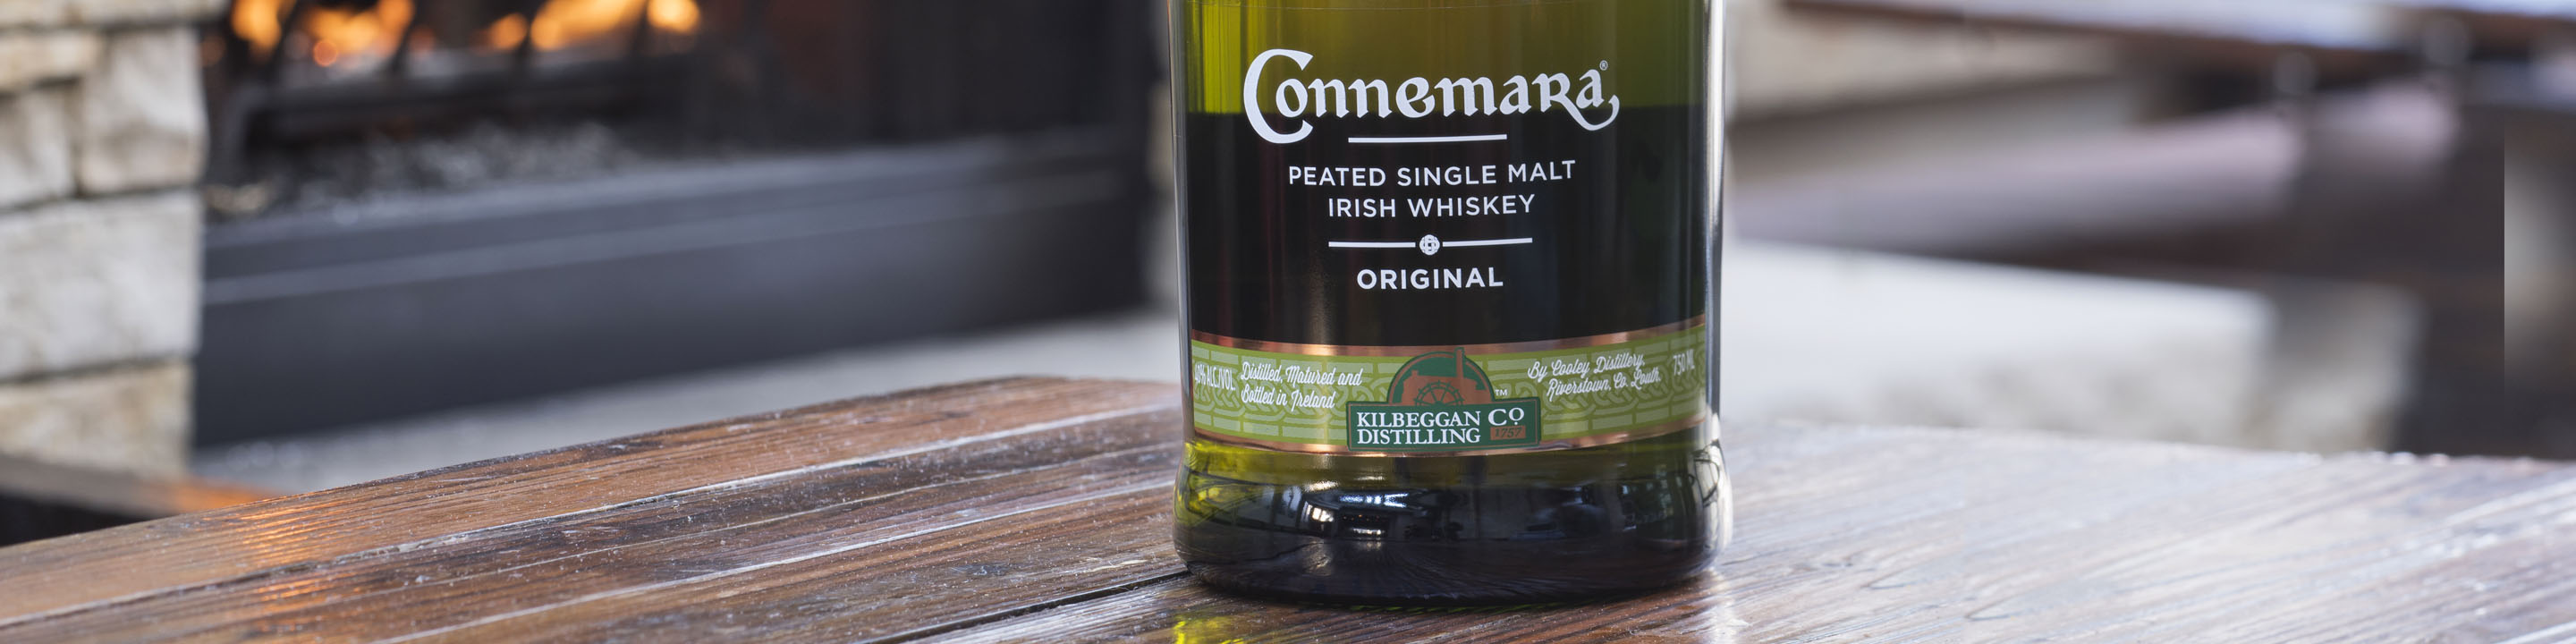 Inspired by Ireland's ancient distilling traditions, Connemara's® smooth sweet malt taste and complex peat flavours makes it a truly unique Irish whiskey. Connemara® allows you to unearth the Peated Pleasures of Ireland. 